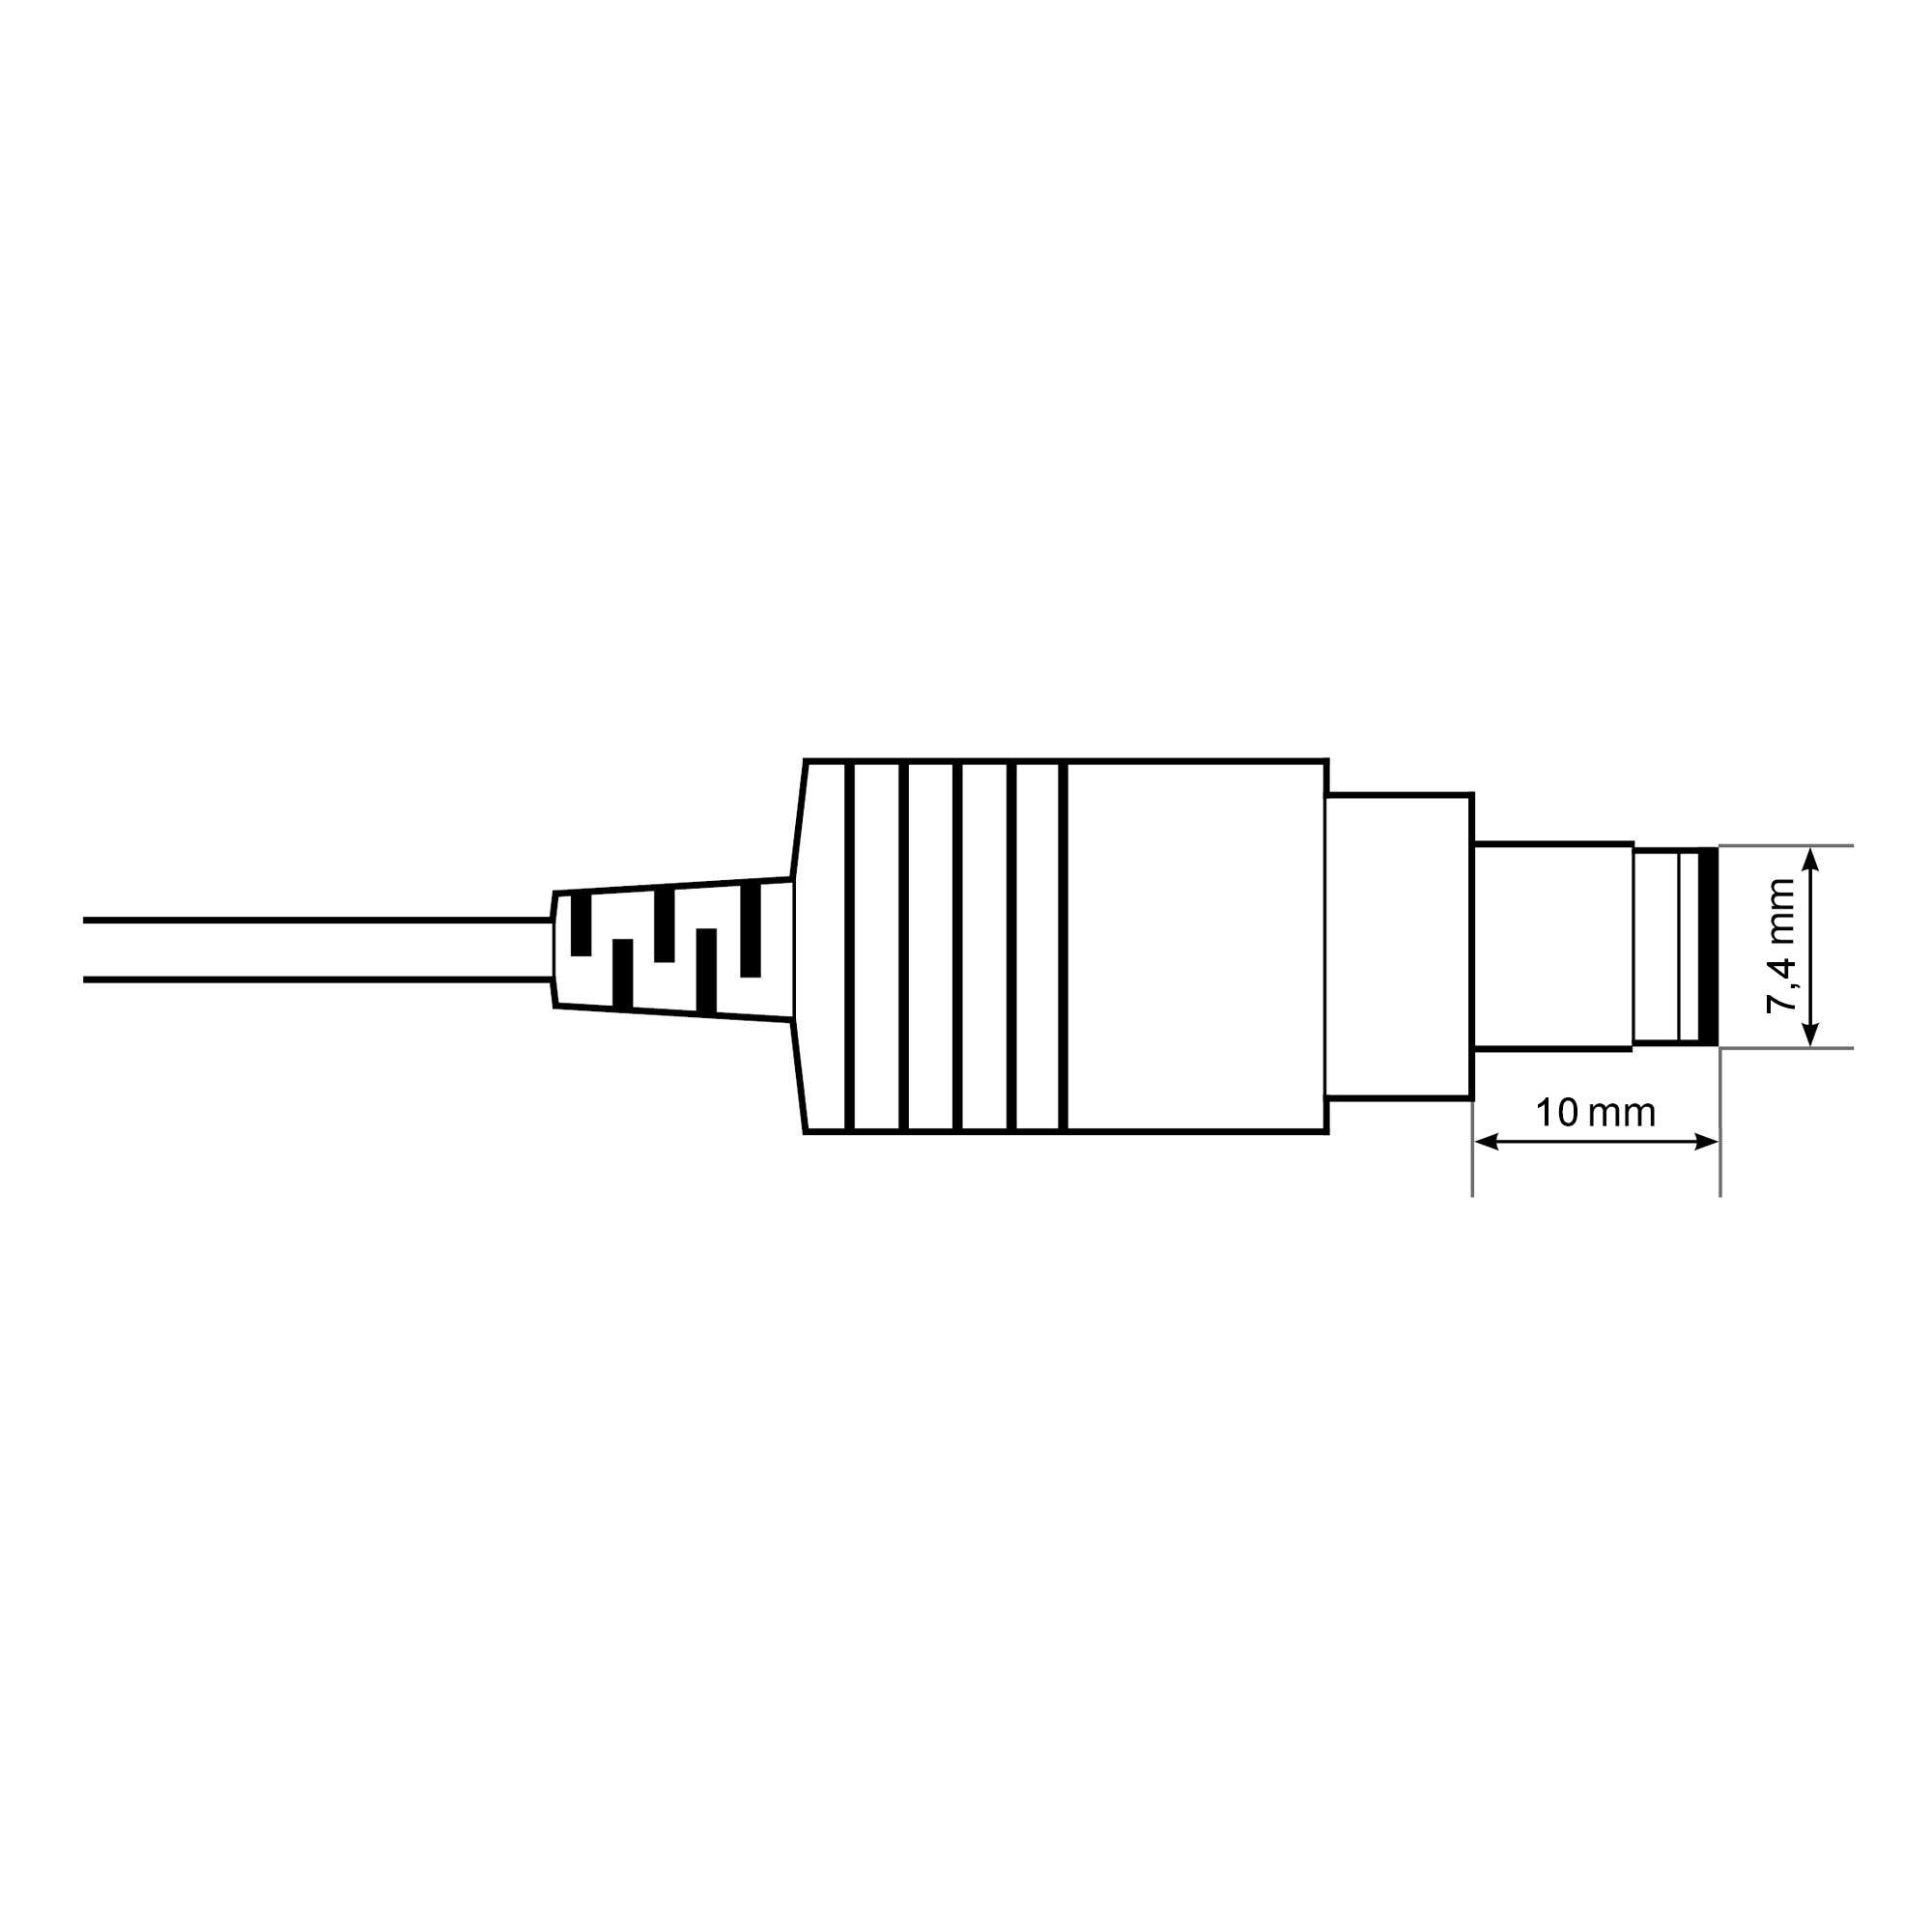 Leicke Ull Power Supply For Hp Compaq 90w Plug 74x50 Mm Wiring Diagram Along With Circuit